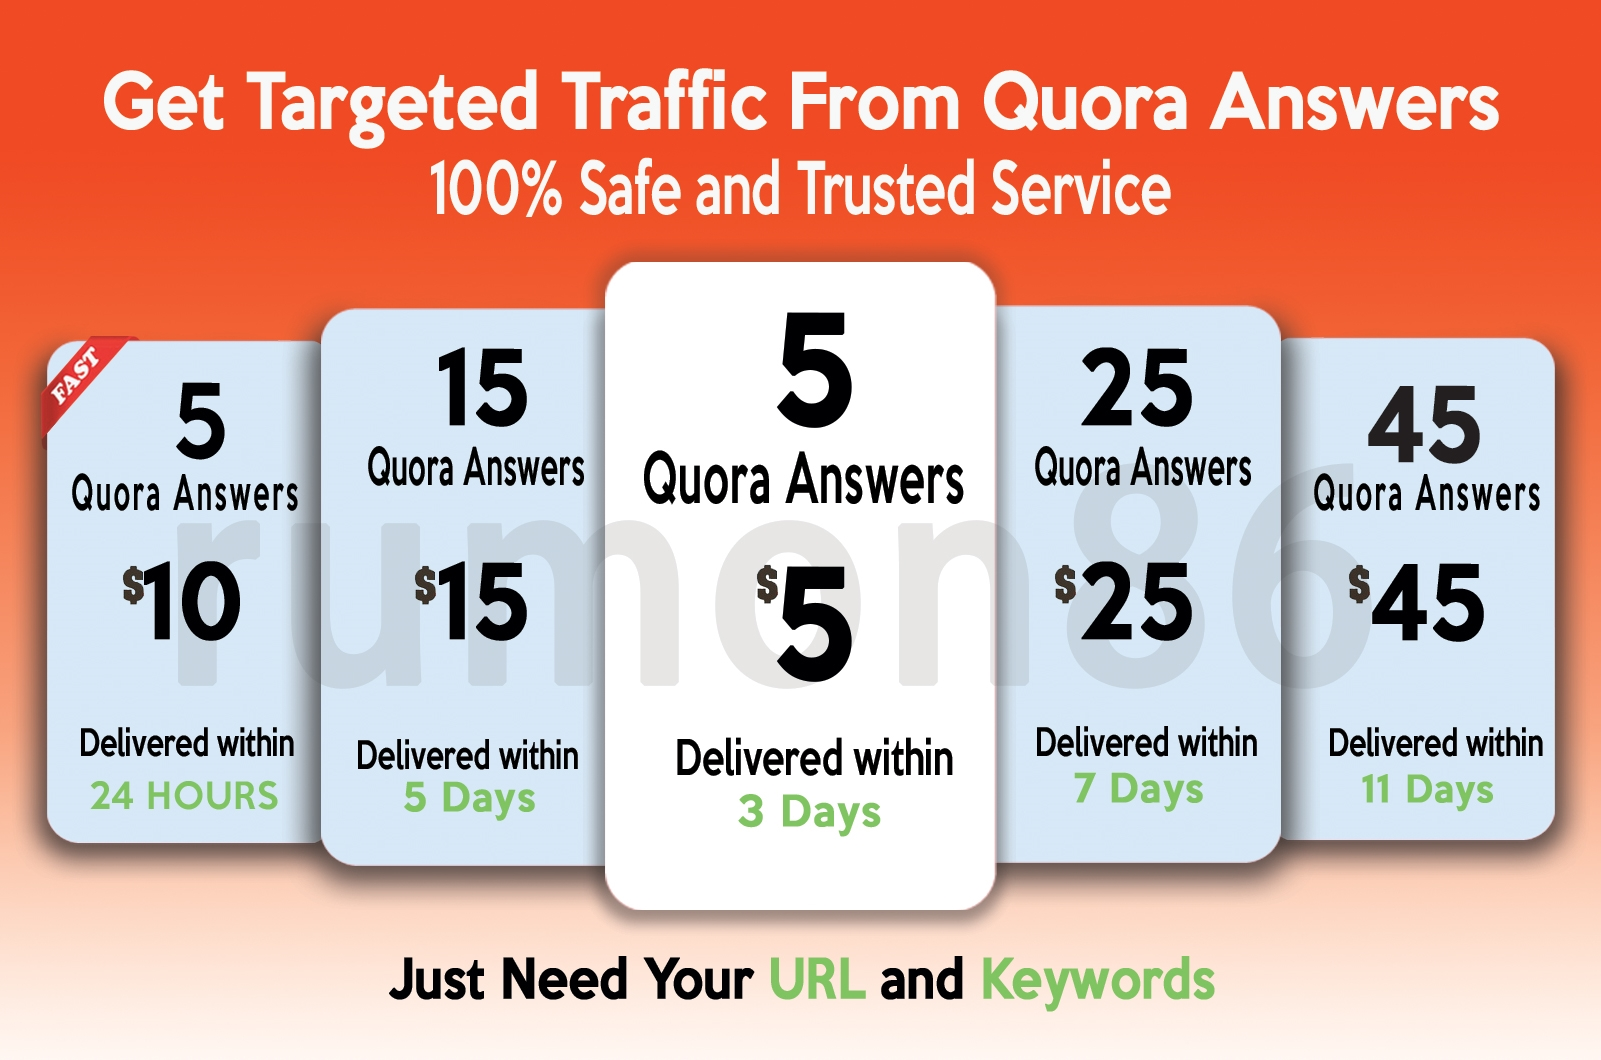 Promote your website in 5 Quora Answers with contextu...